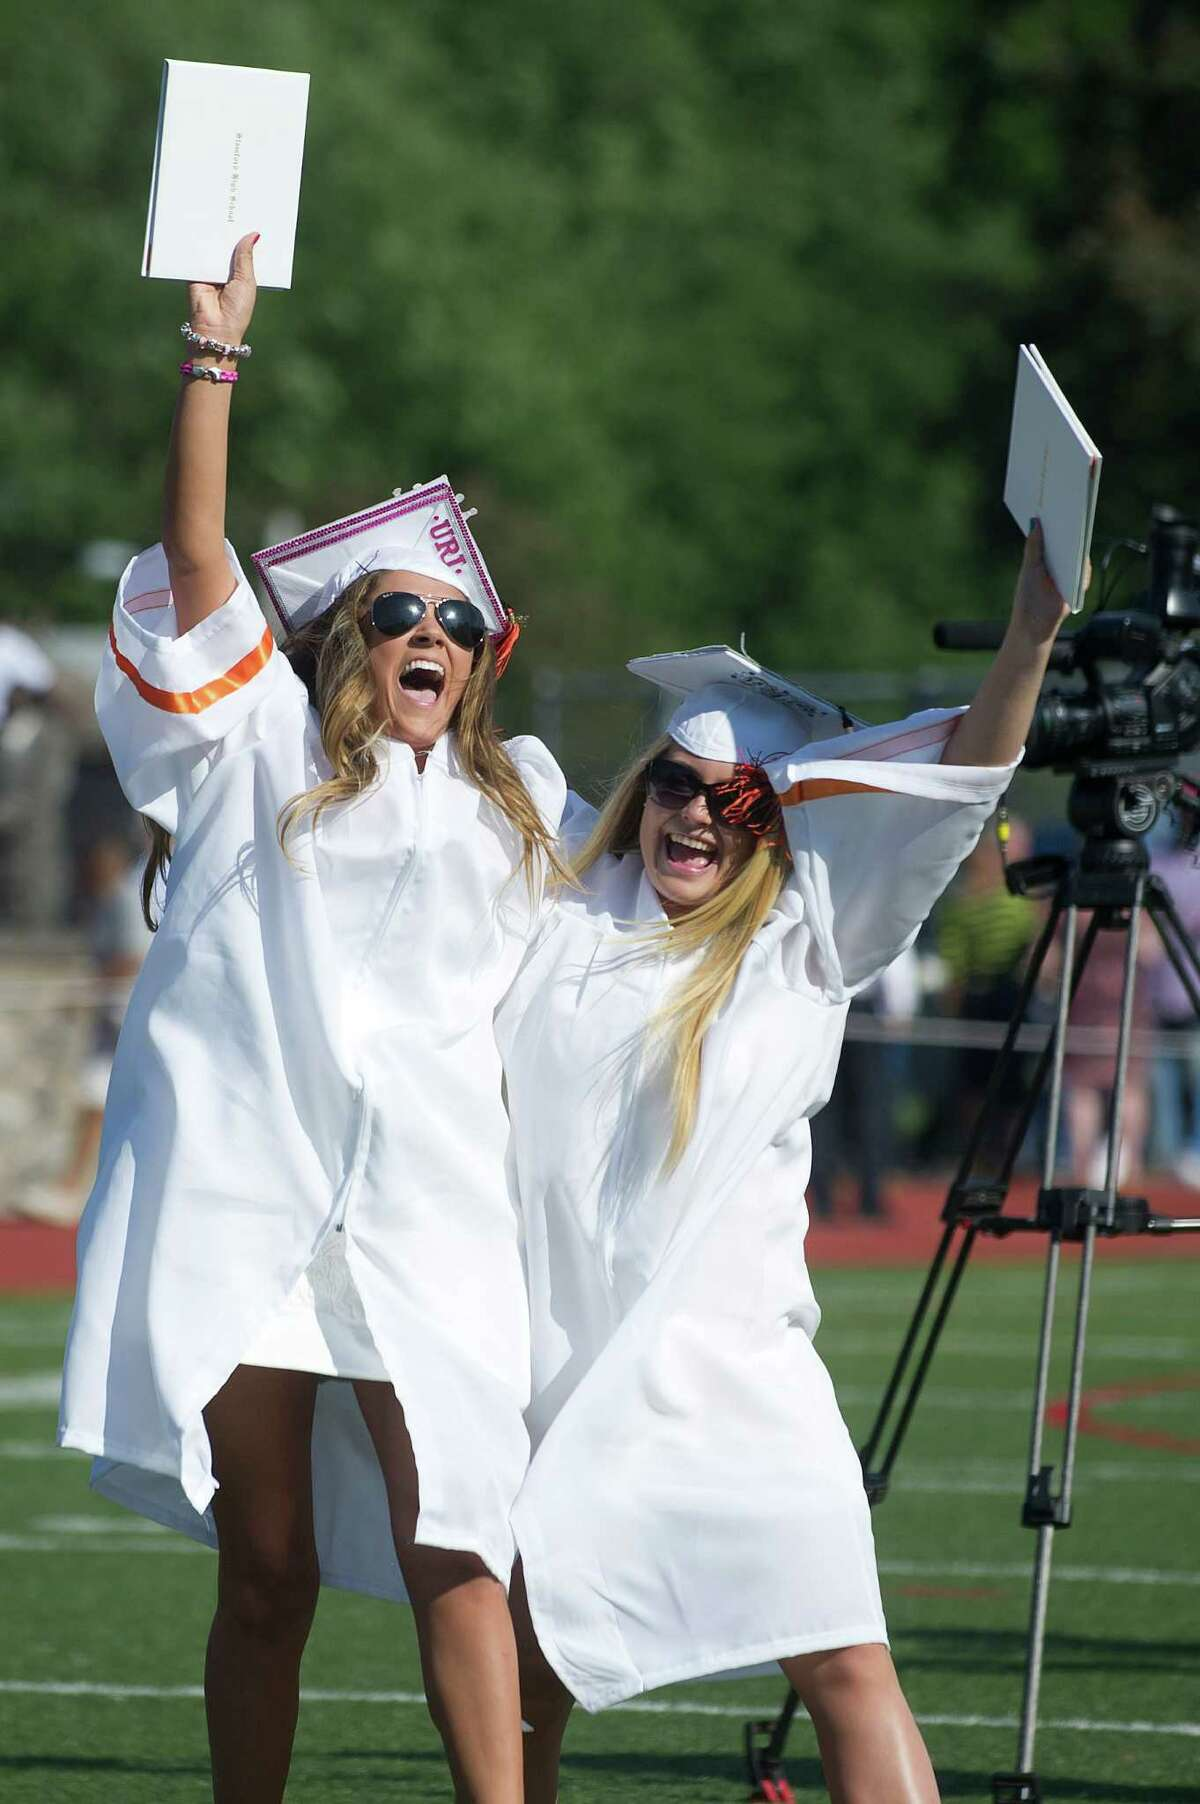 Graduates celebrate after getting their diplomas during the Stamford High School commencement ceremony on Thursday, June 19, 2014.